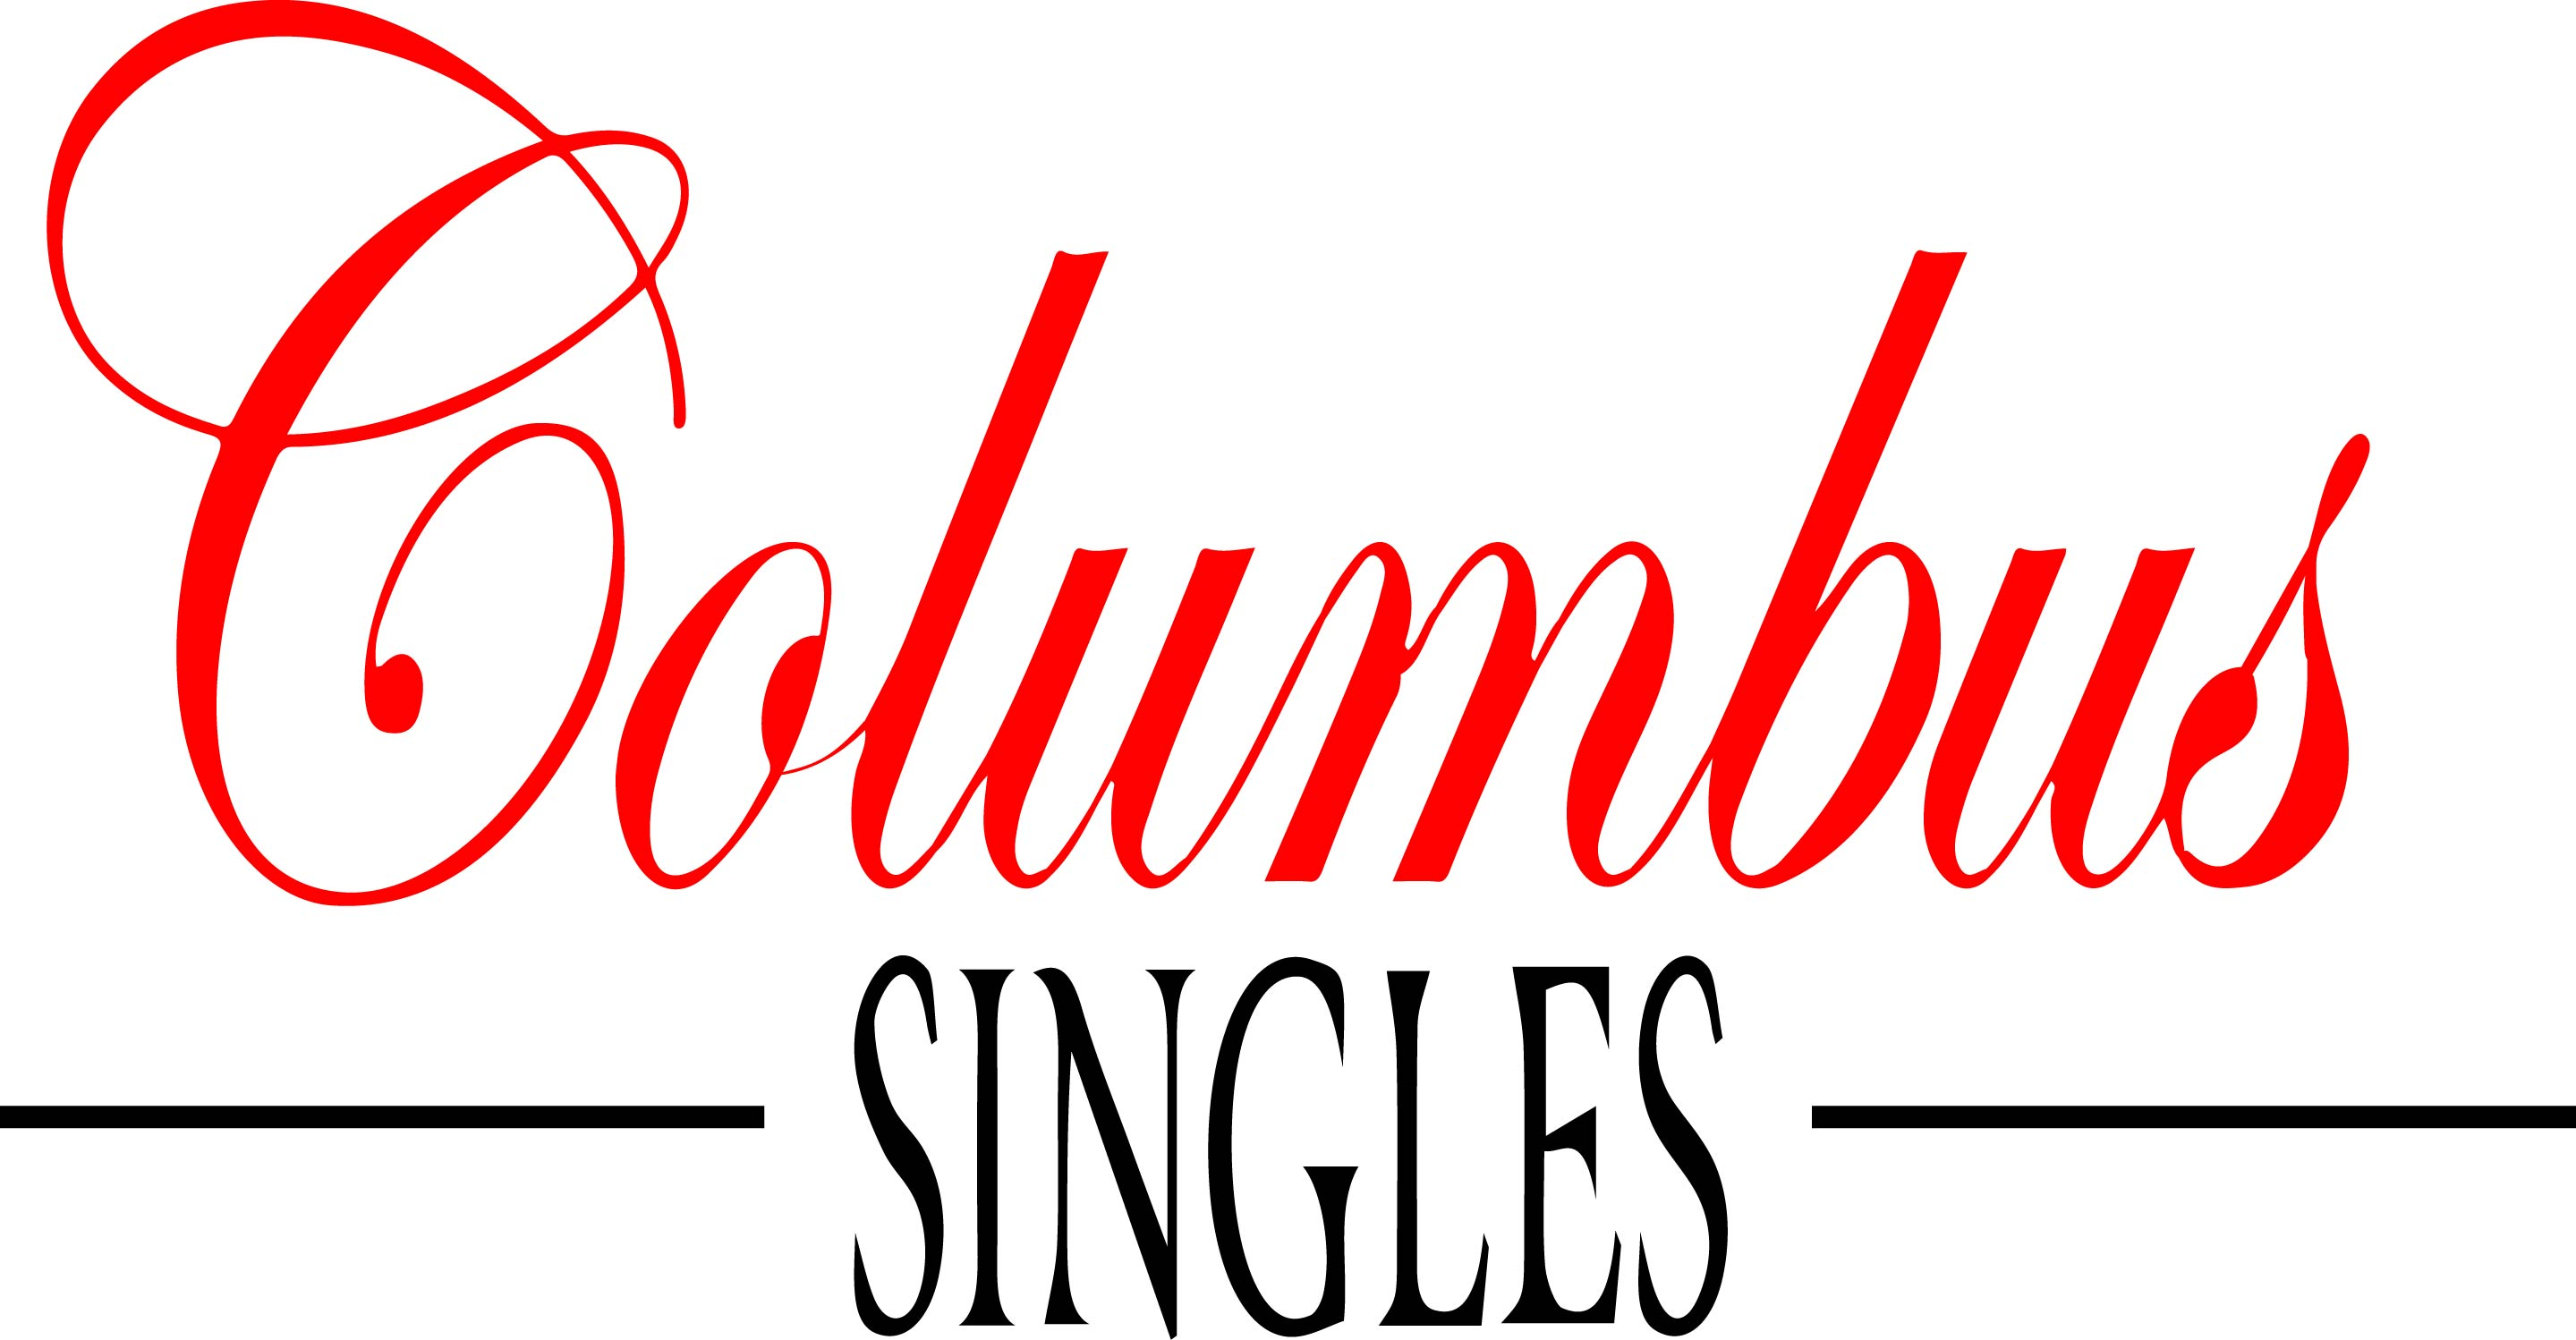 columbus single parent personals Single parent advocate is a non-profit organization commited to educating, equipping and empowering single parents with resources, practical assistance.